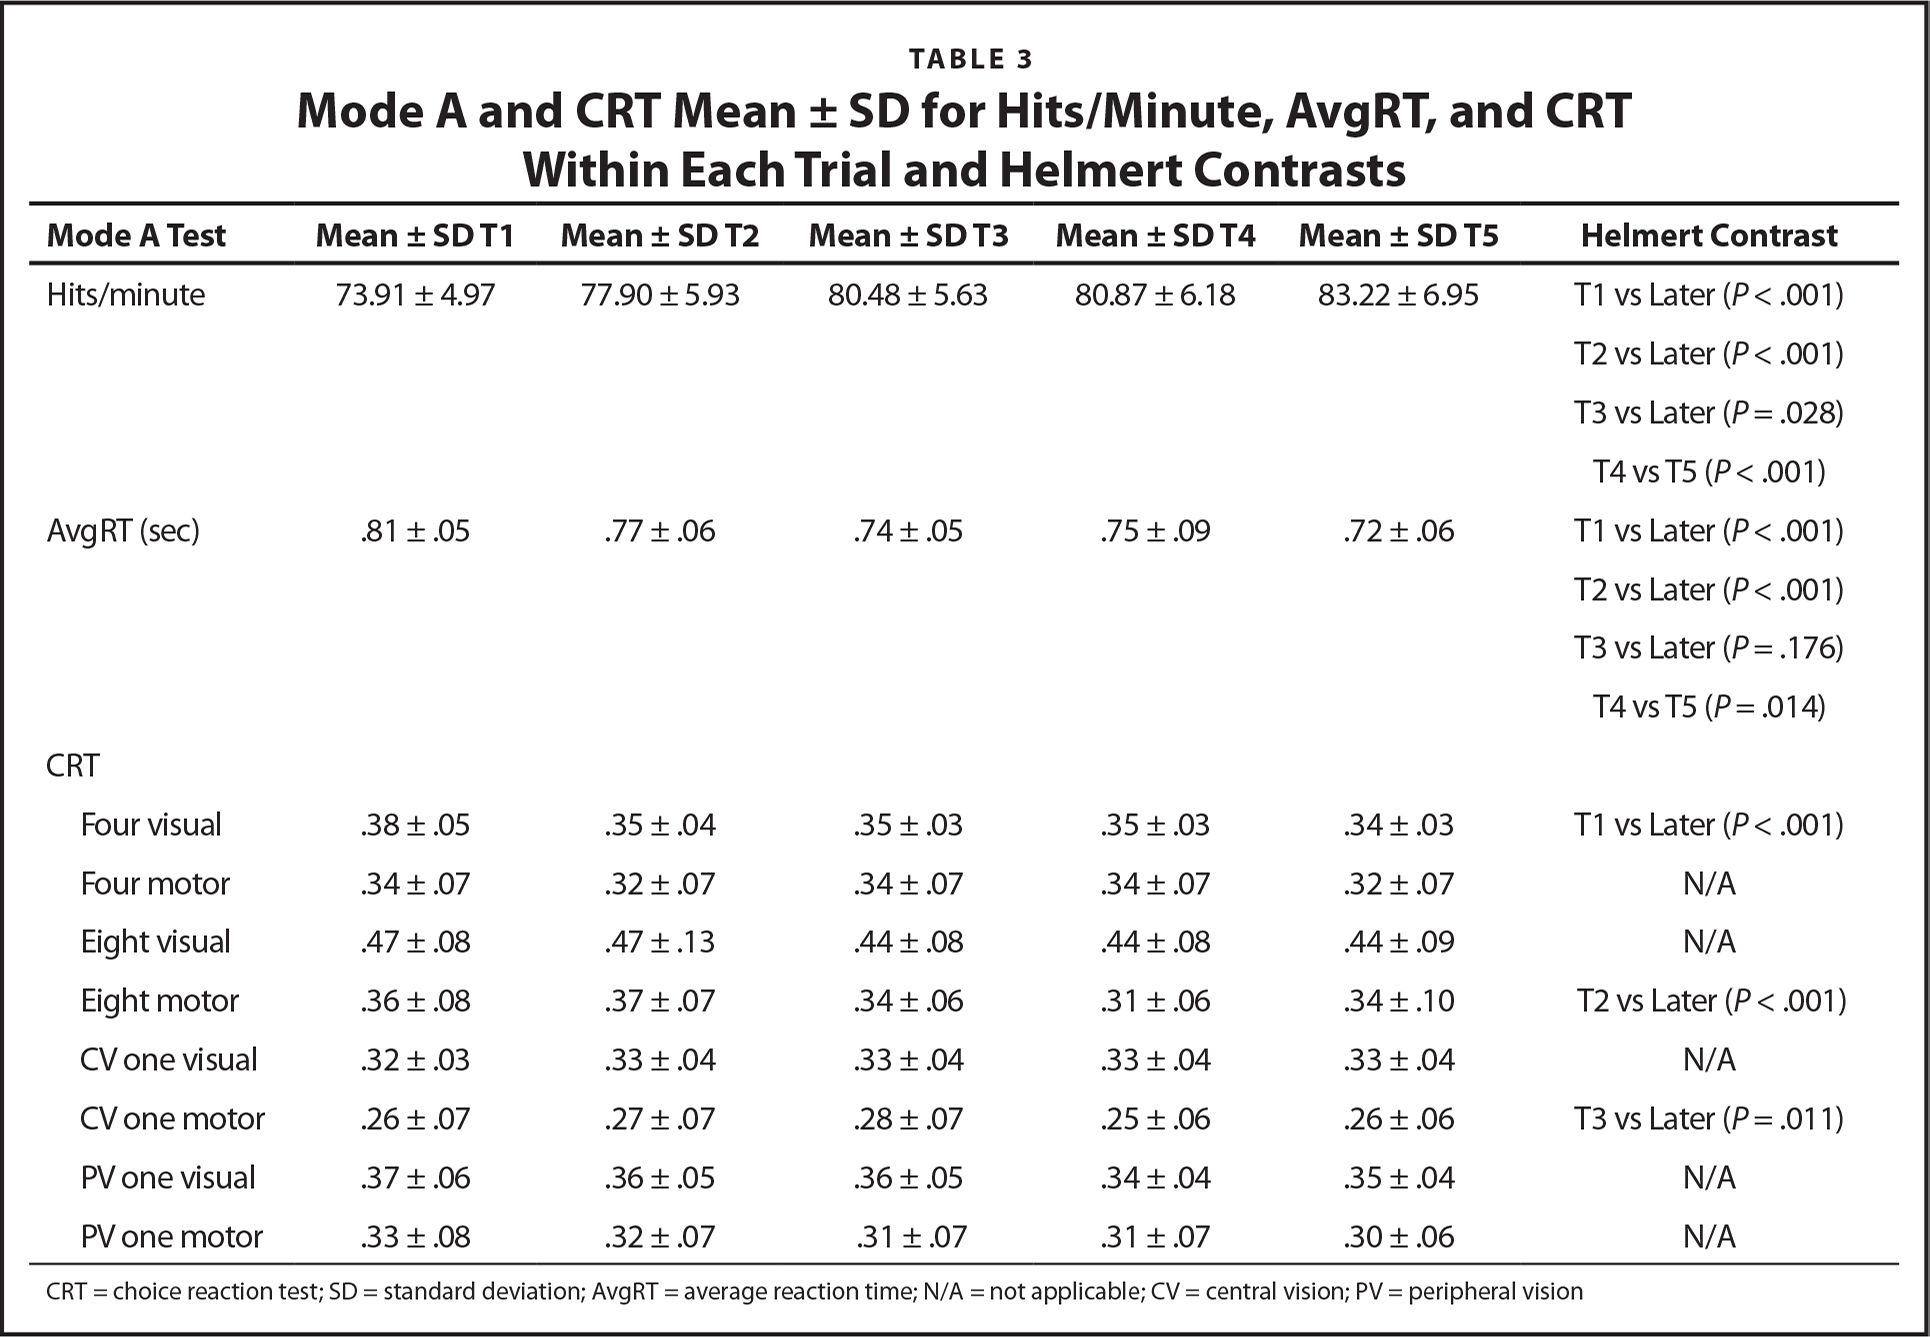 Mode A and CRT Mean ± SD for Hits/Minute, AvgRT, and CRT Within Each Trial and Helmert Contrasts